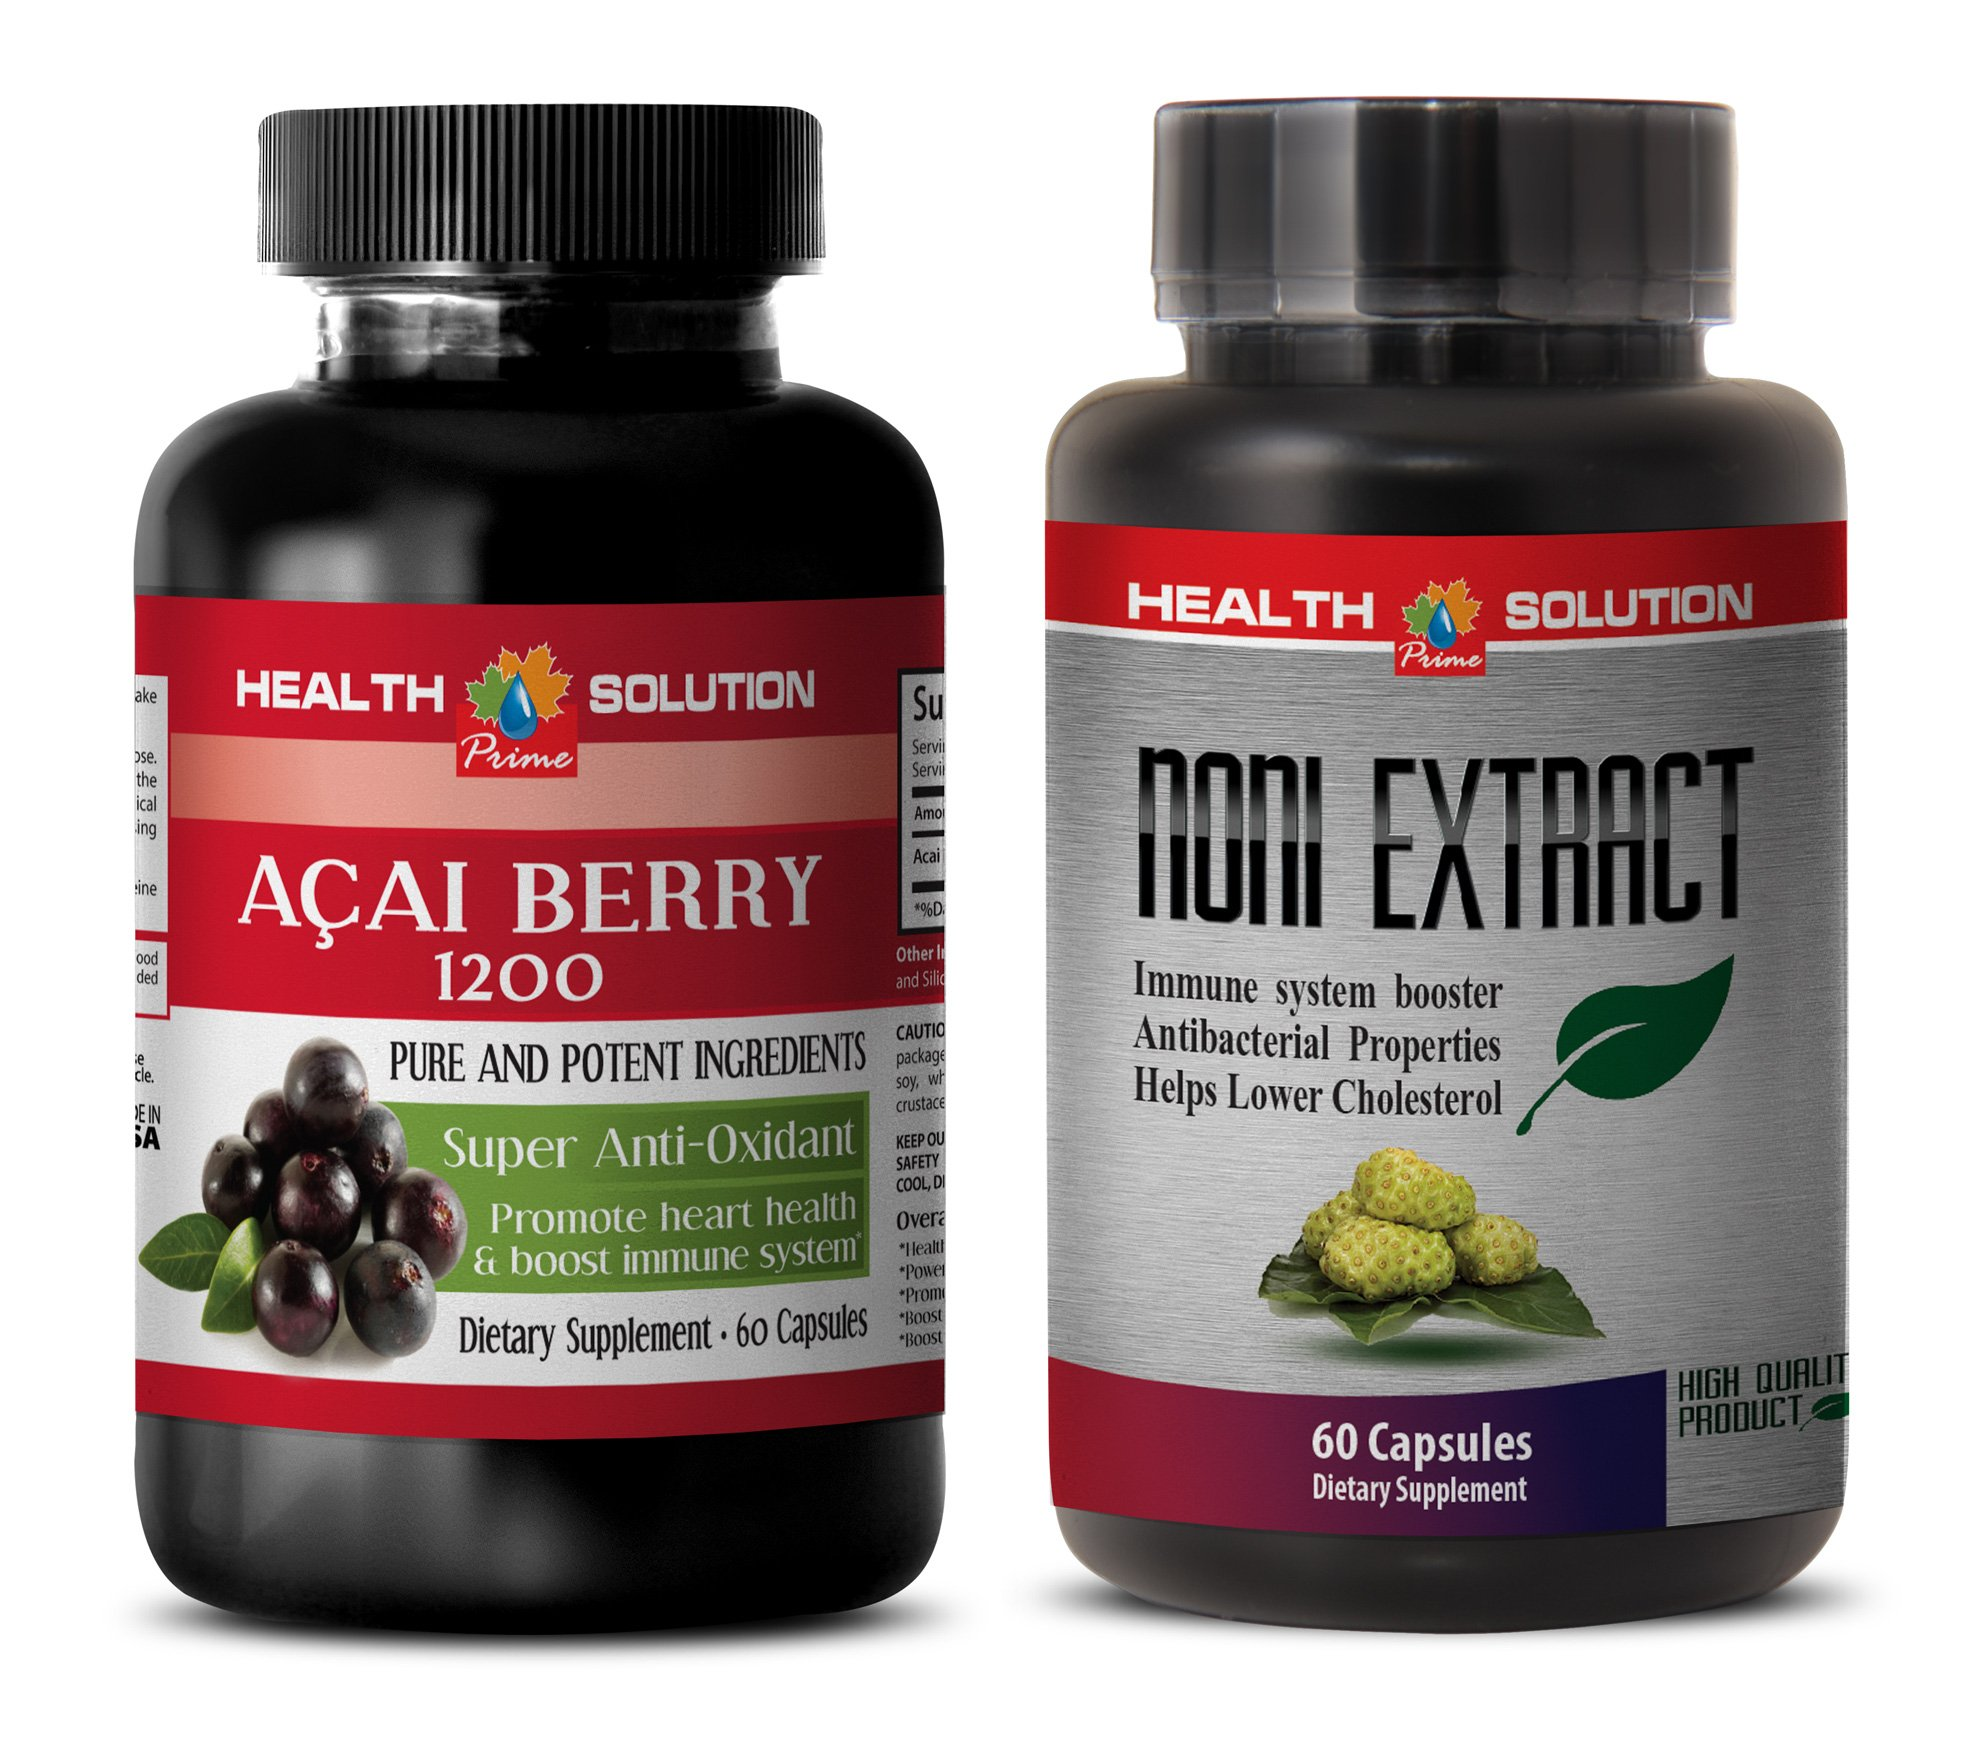 energy supplement all natural - ACAI BERRY - NONI - acai oil organic - 2 Bottles Combo 120 Capsules